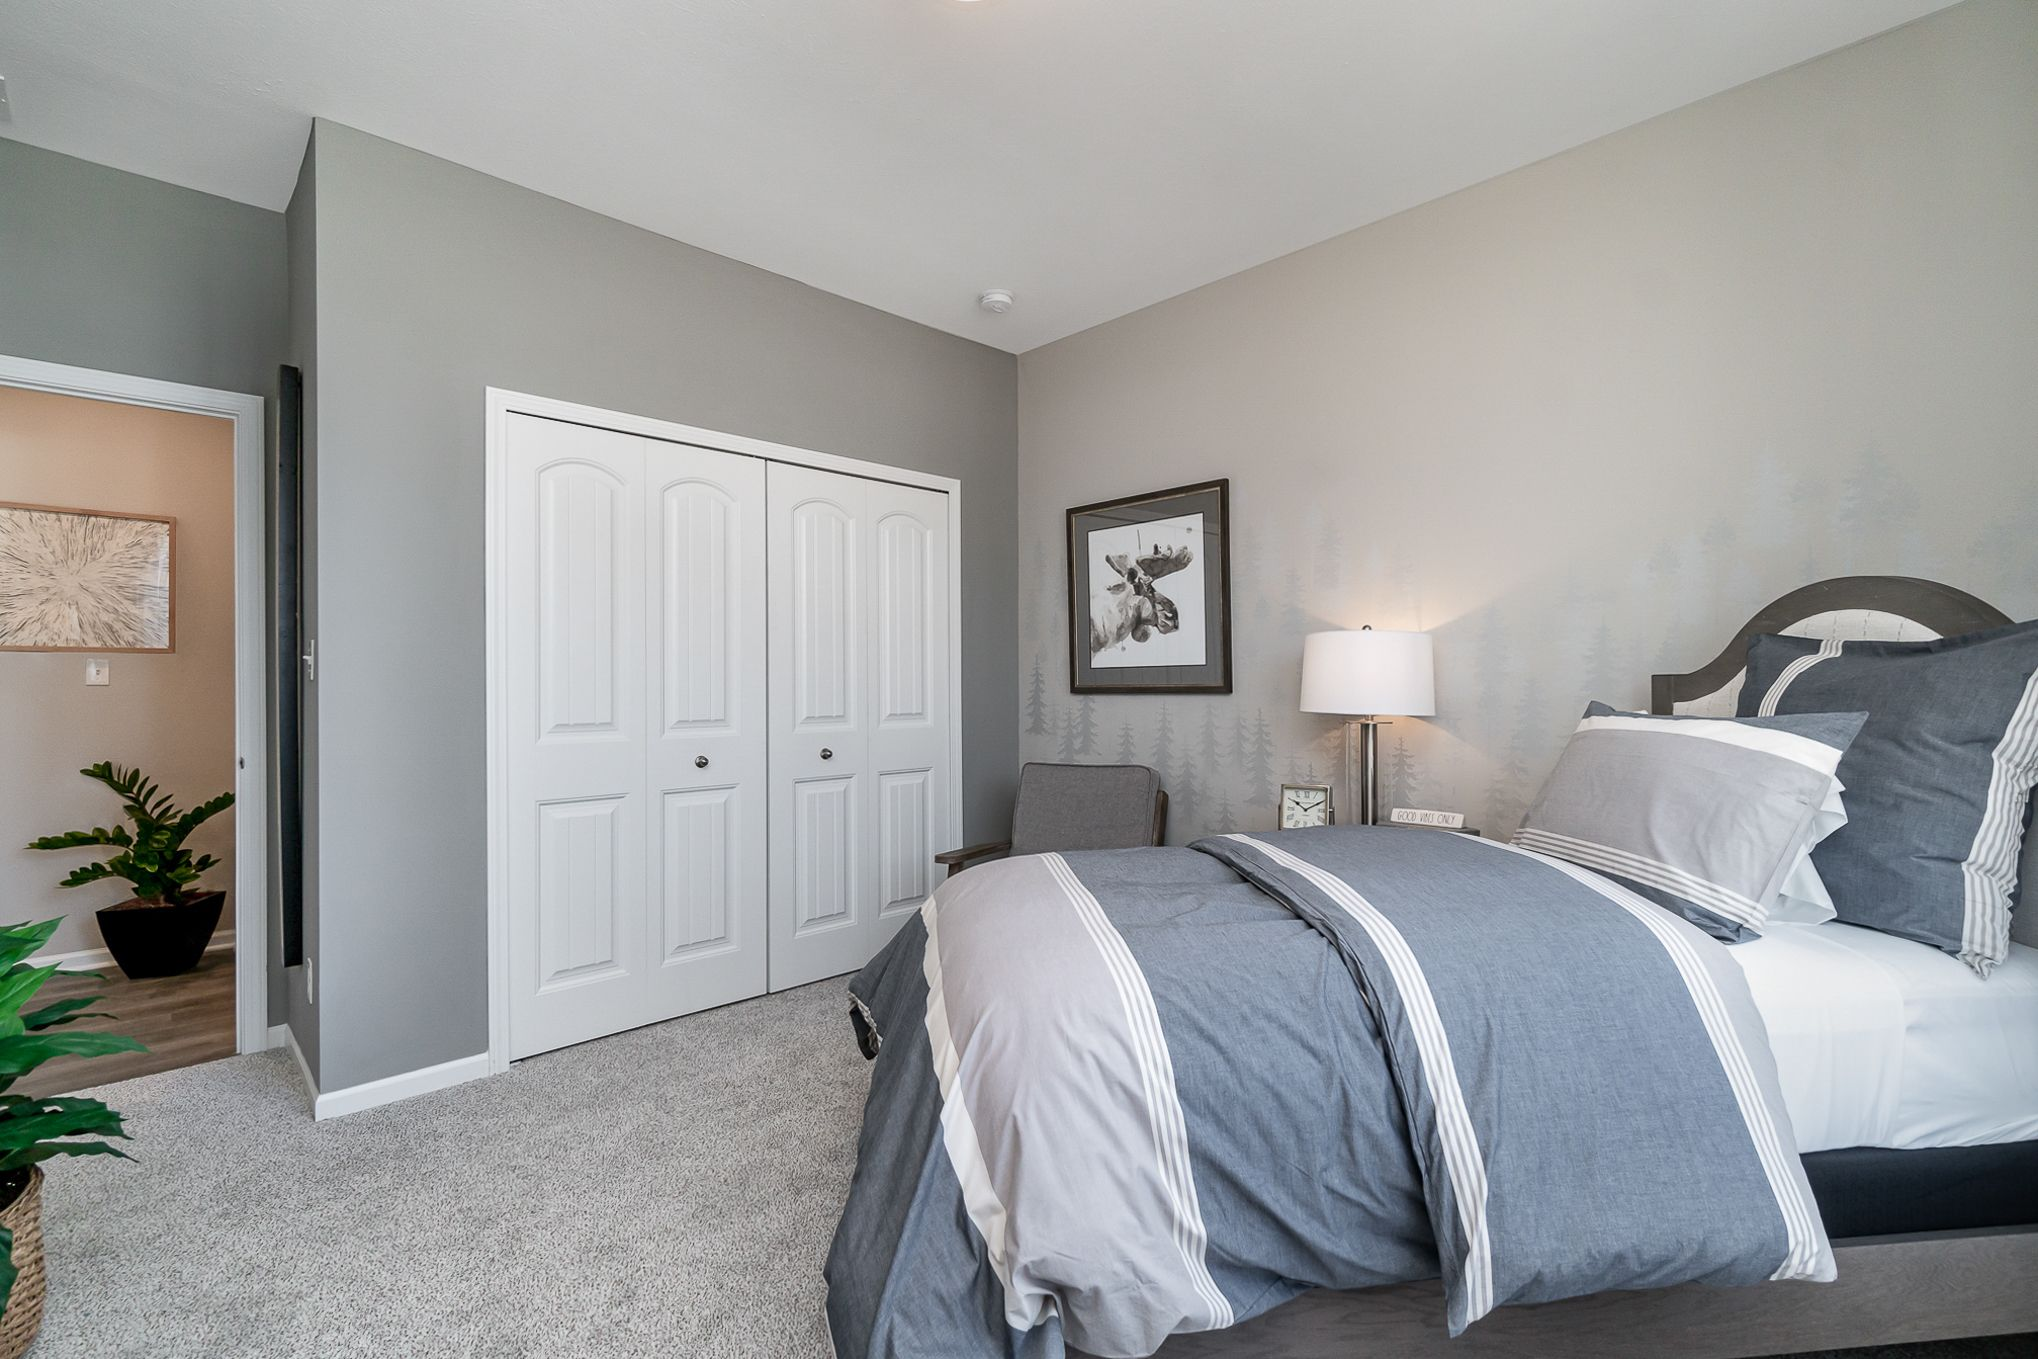 Bedroom featured in the Harmony By Olthof Homes in Indianapolis, IN